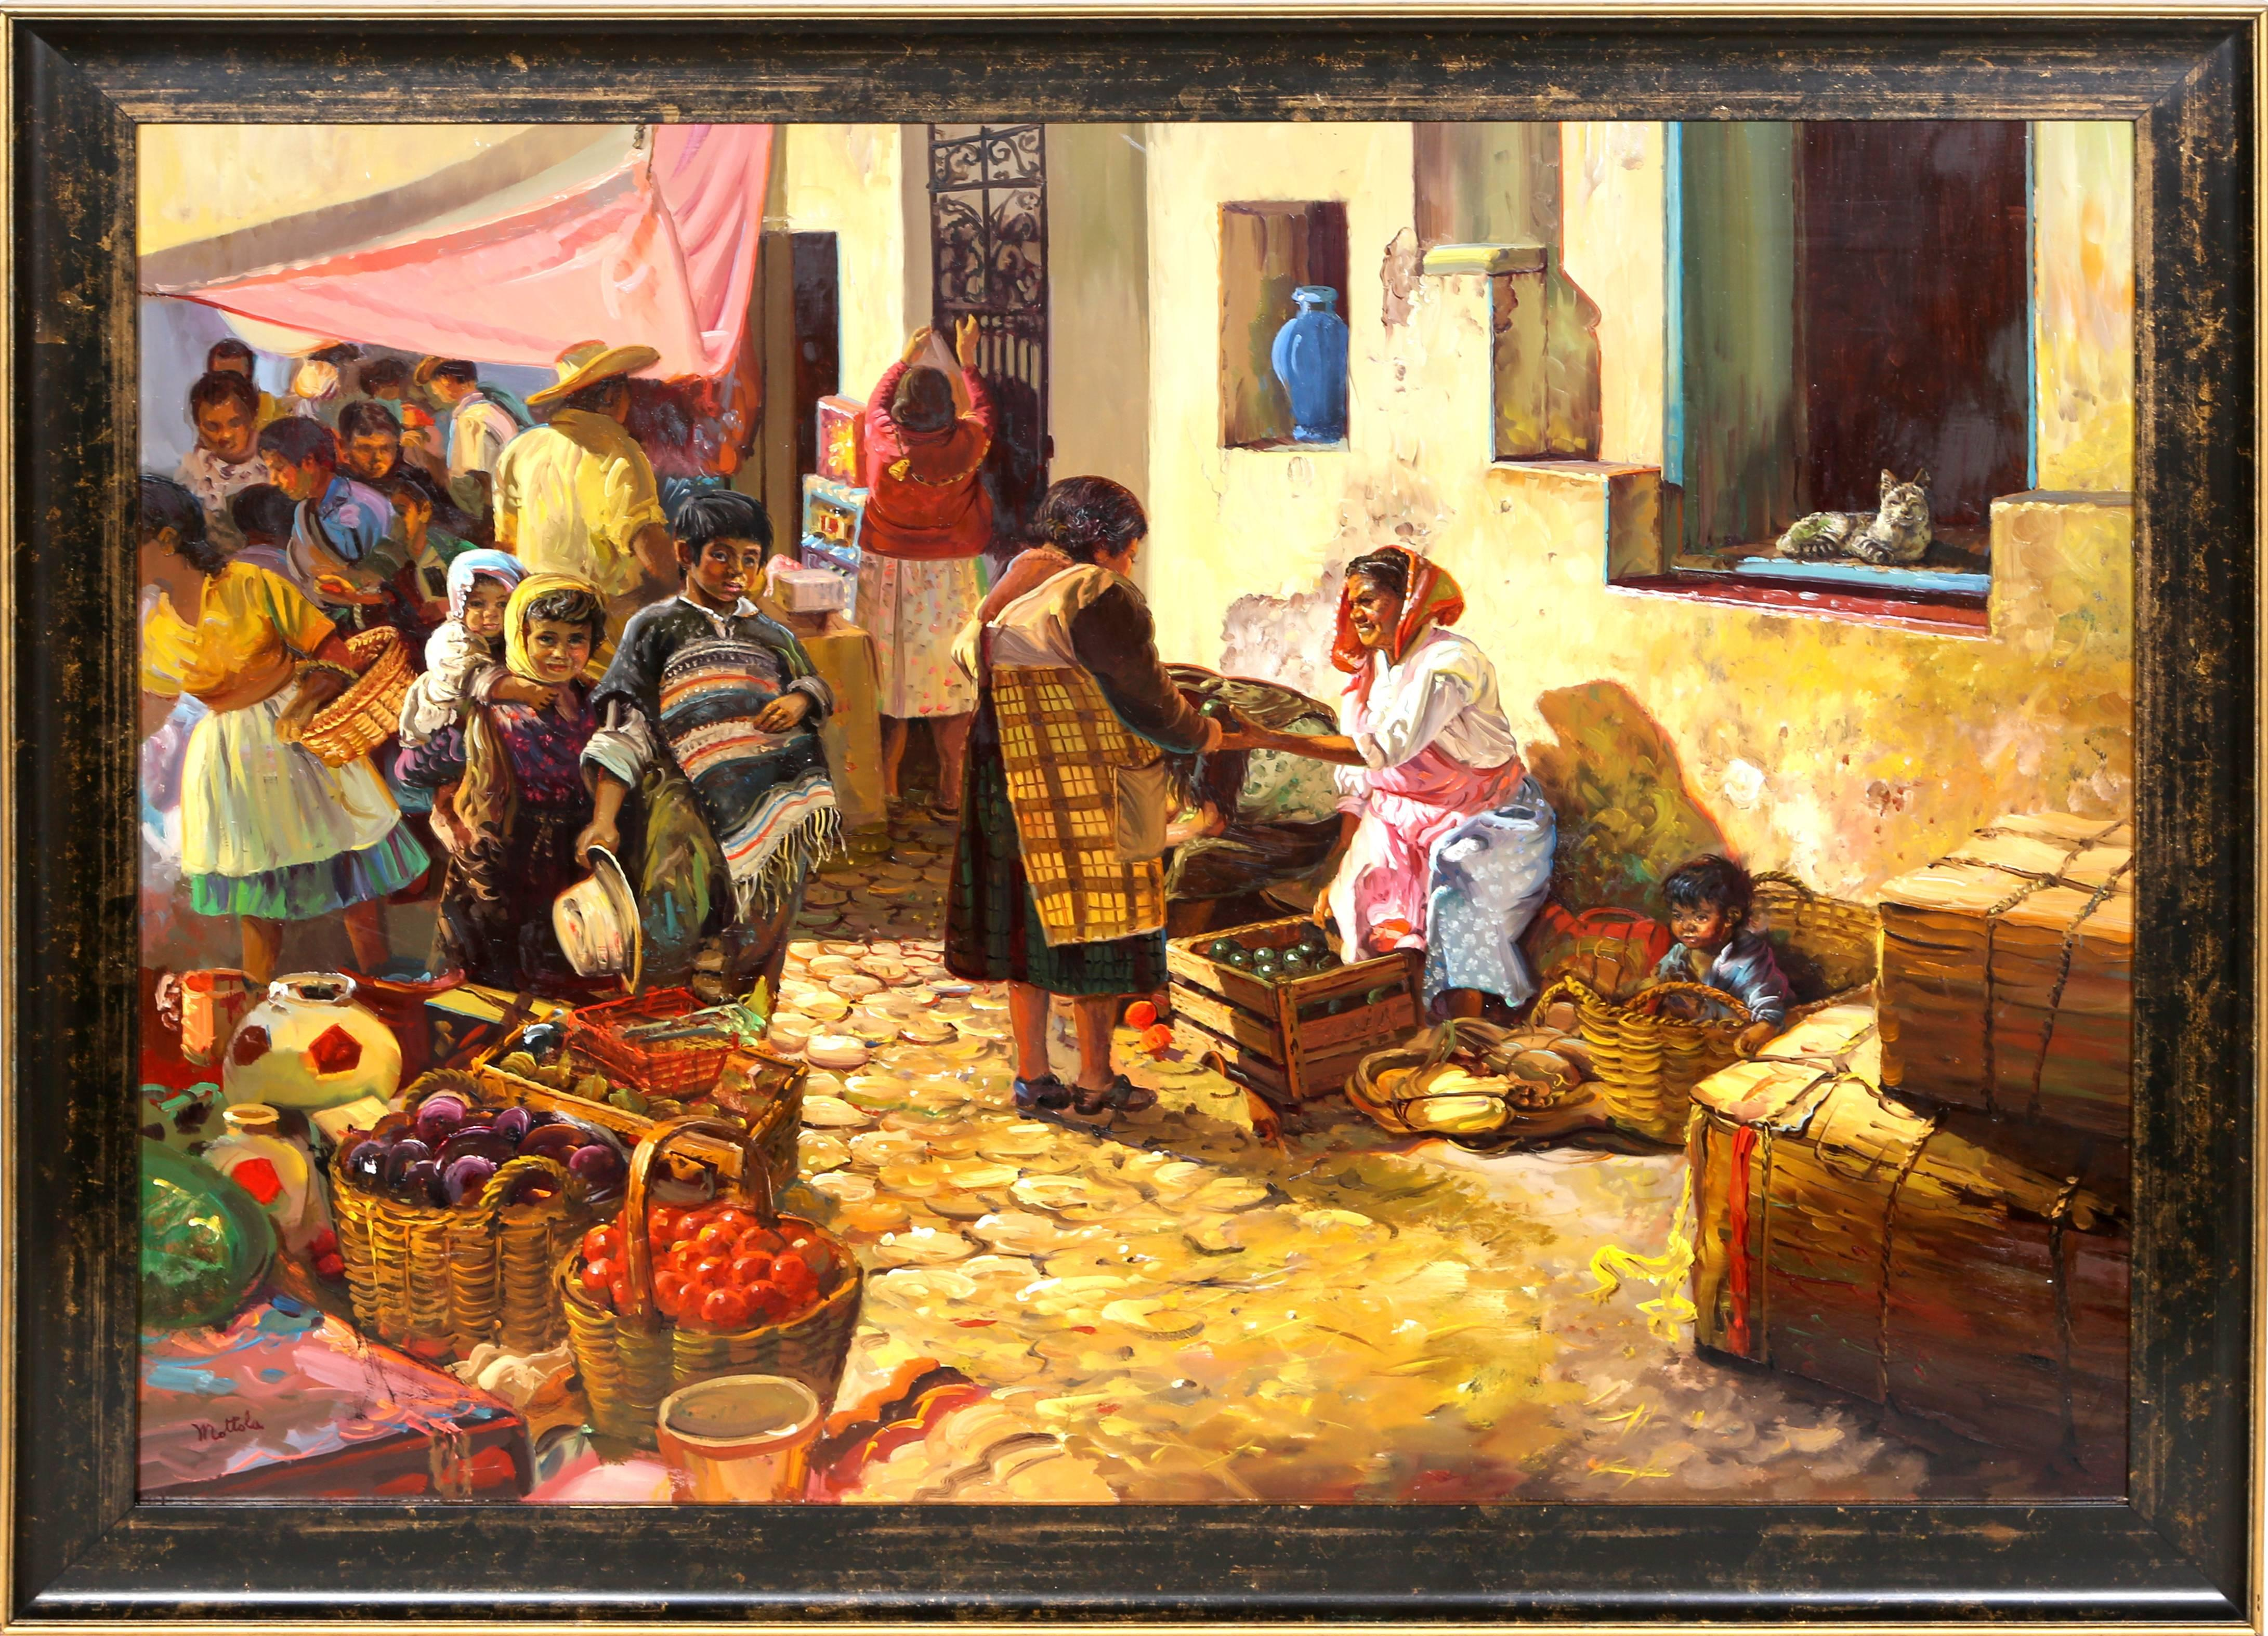 Market Place, Taxco Mexico, Oil Painting by Fil Mottola